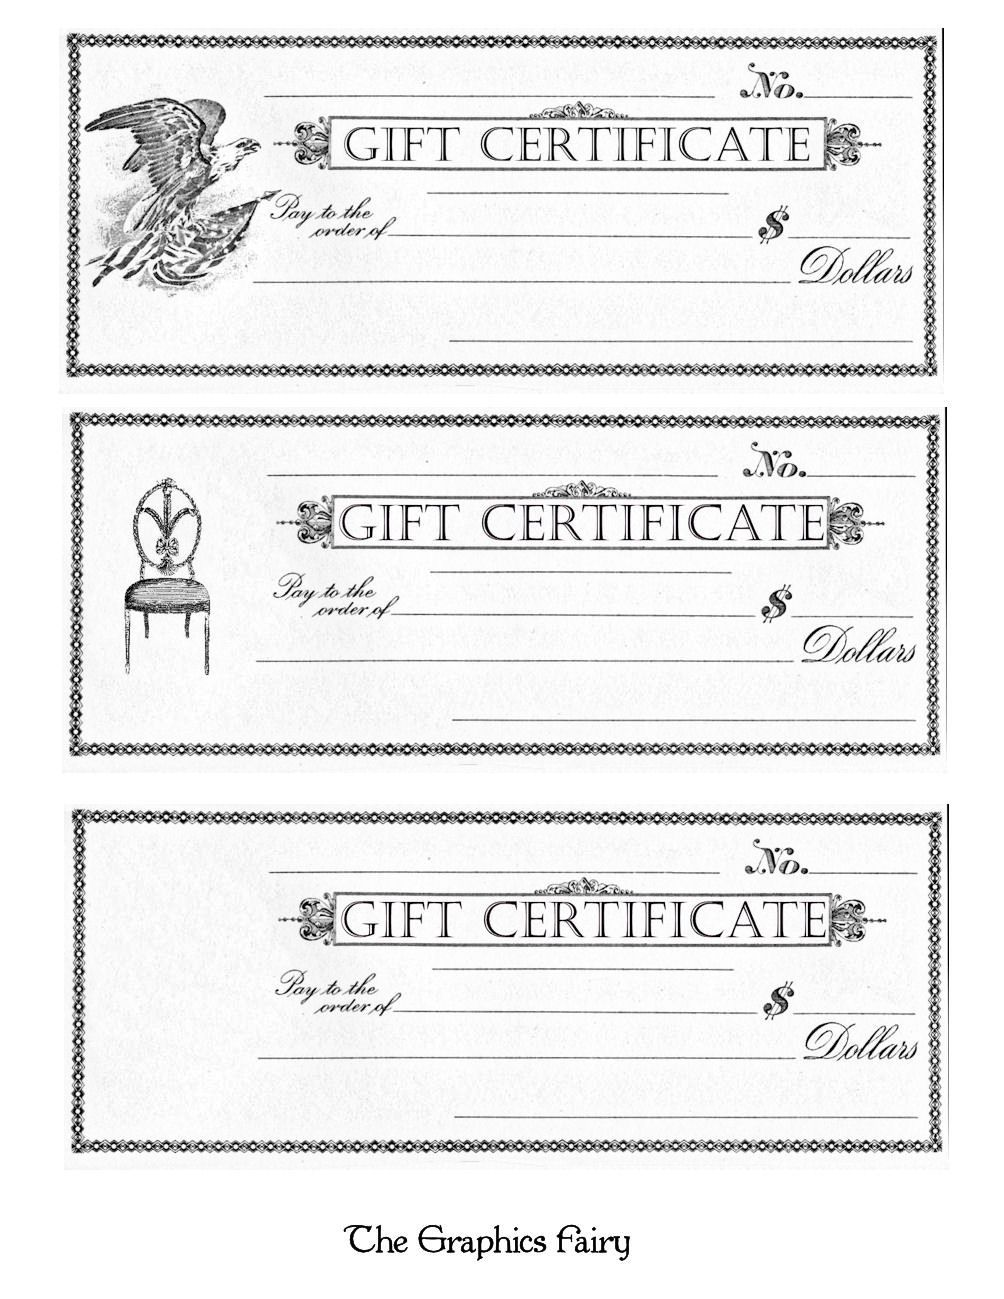 generic expense reportvector beautiful certificate templates  printable gift certificates template birthday gift gift certificate templates